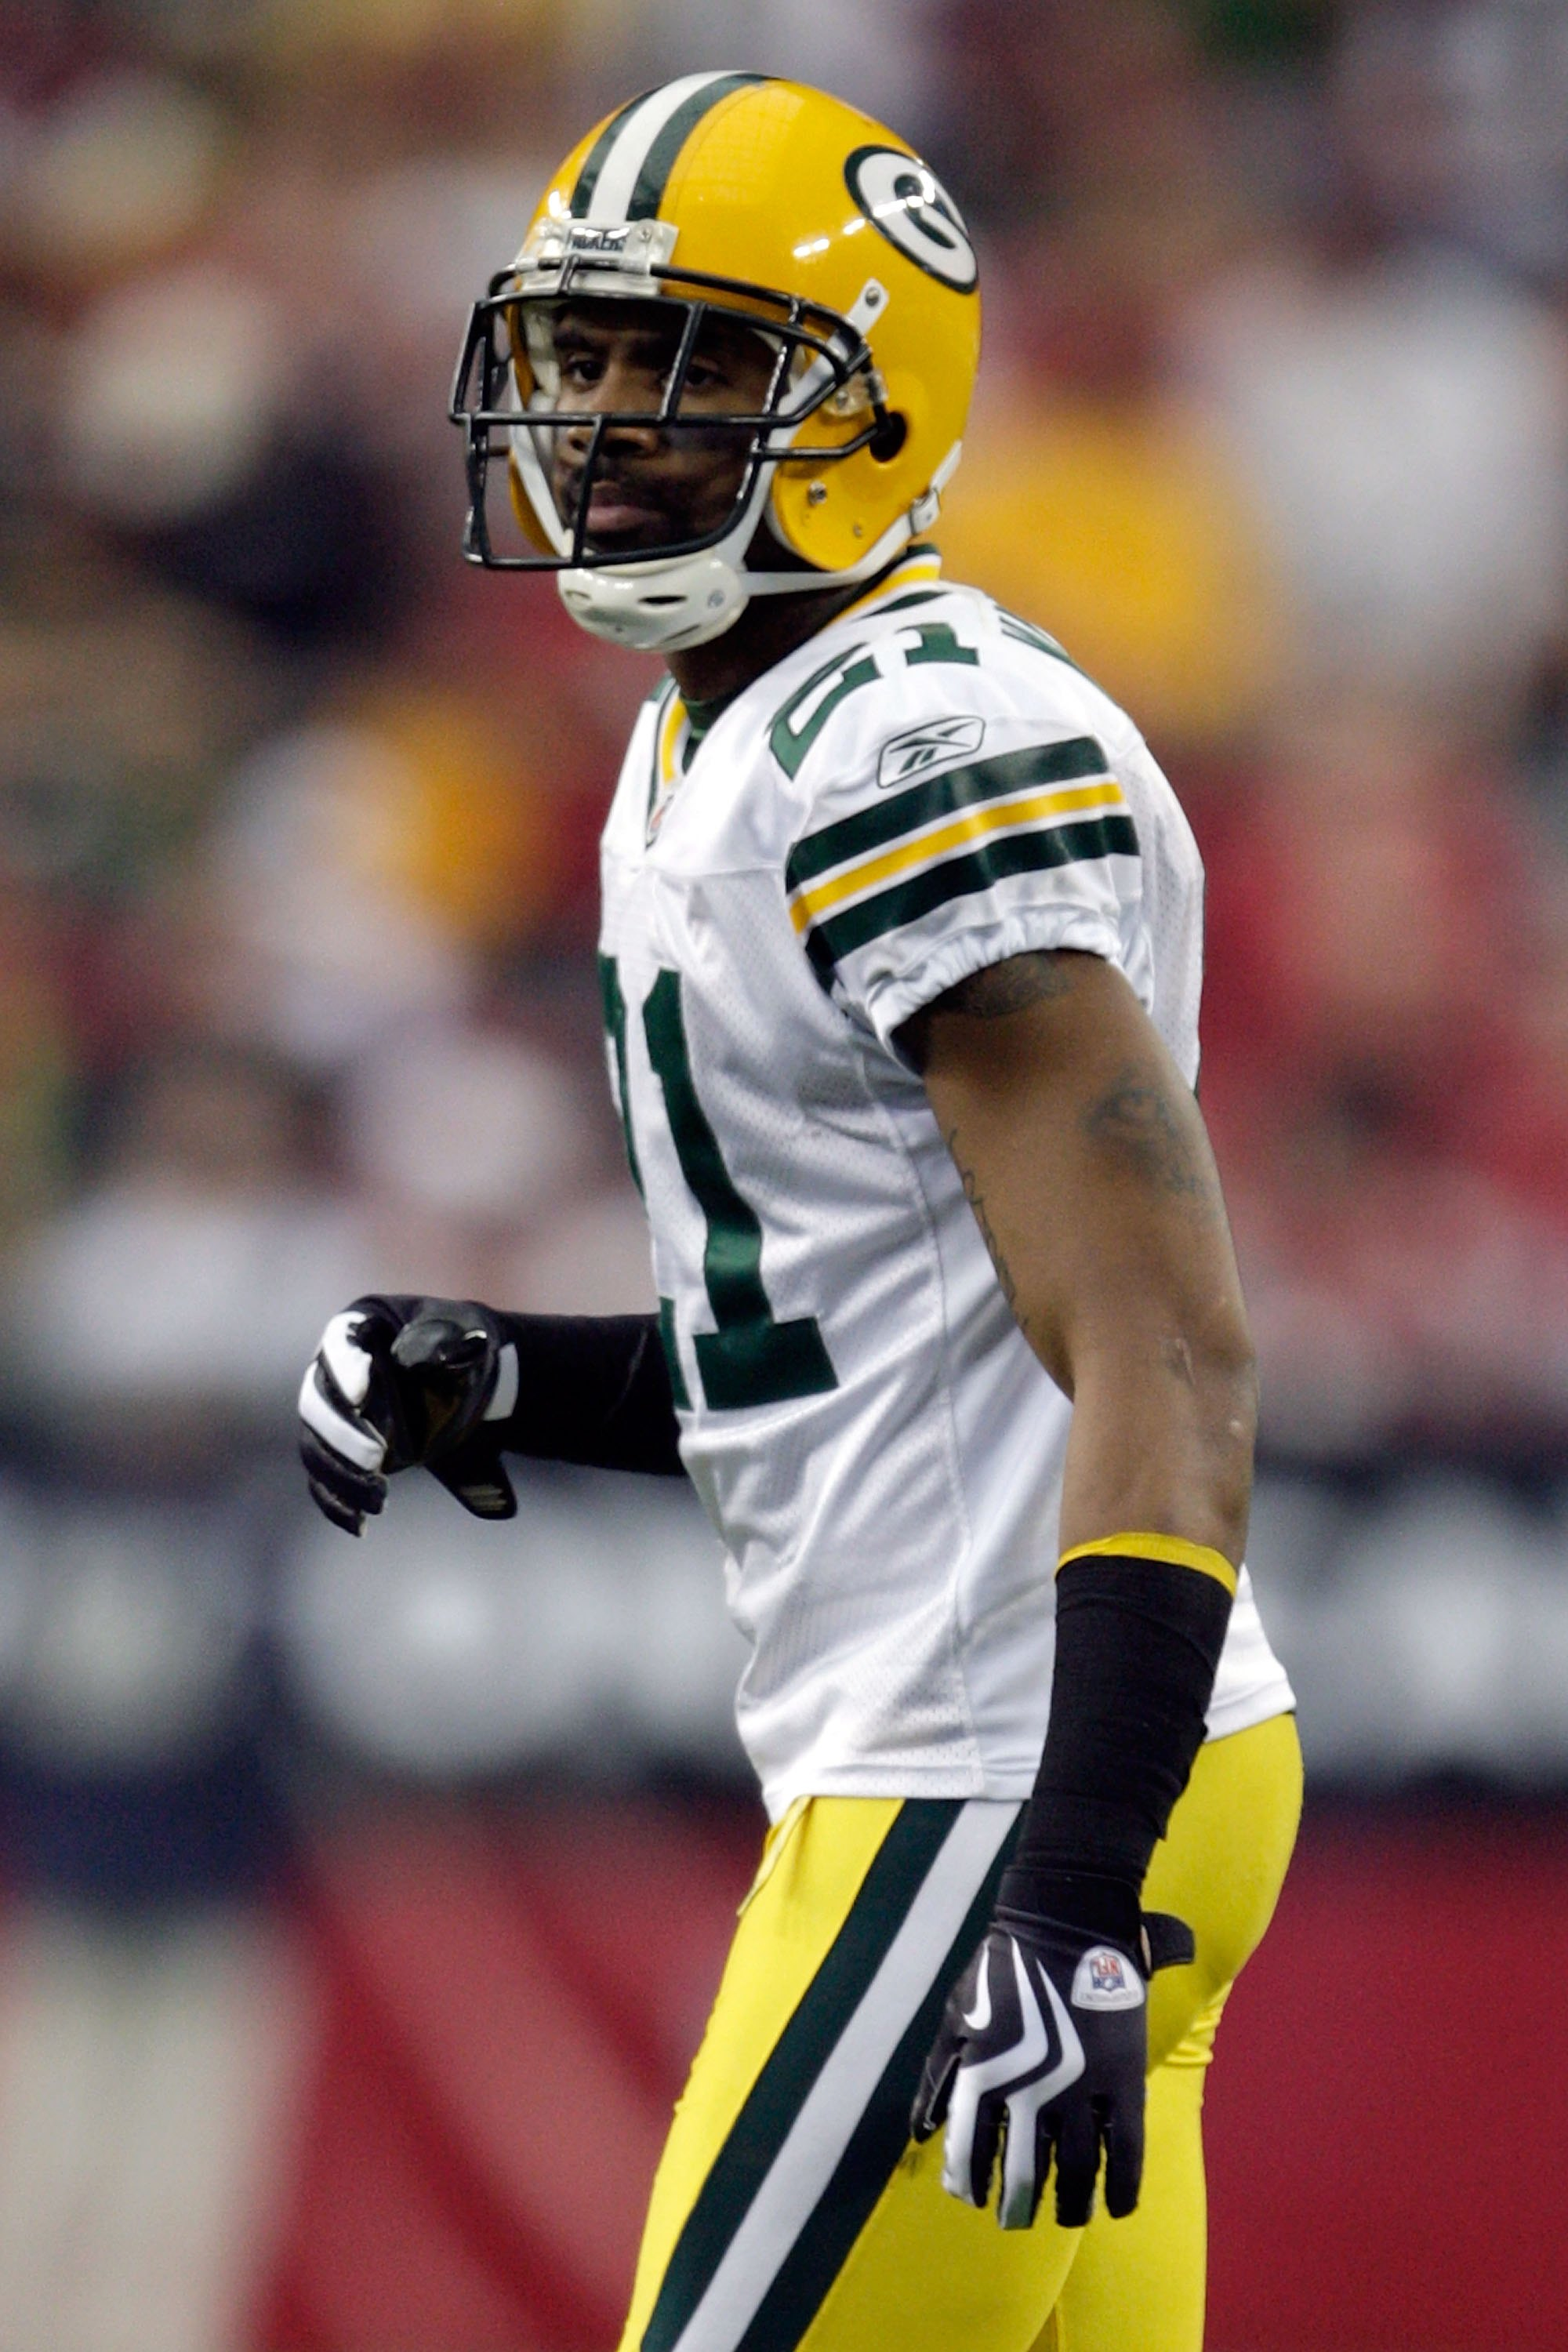 GLENDALE, AZ - JANUARY 03:  Charles Woodson #21 of the Green Bay Packers looks on from the field against the Arizona Cardinals in the second quarter at University of Phoenix Stadium on January 3, 2010 in Glendale, Arizona.  (Photo by Jamie Squire/Getty Im